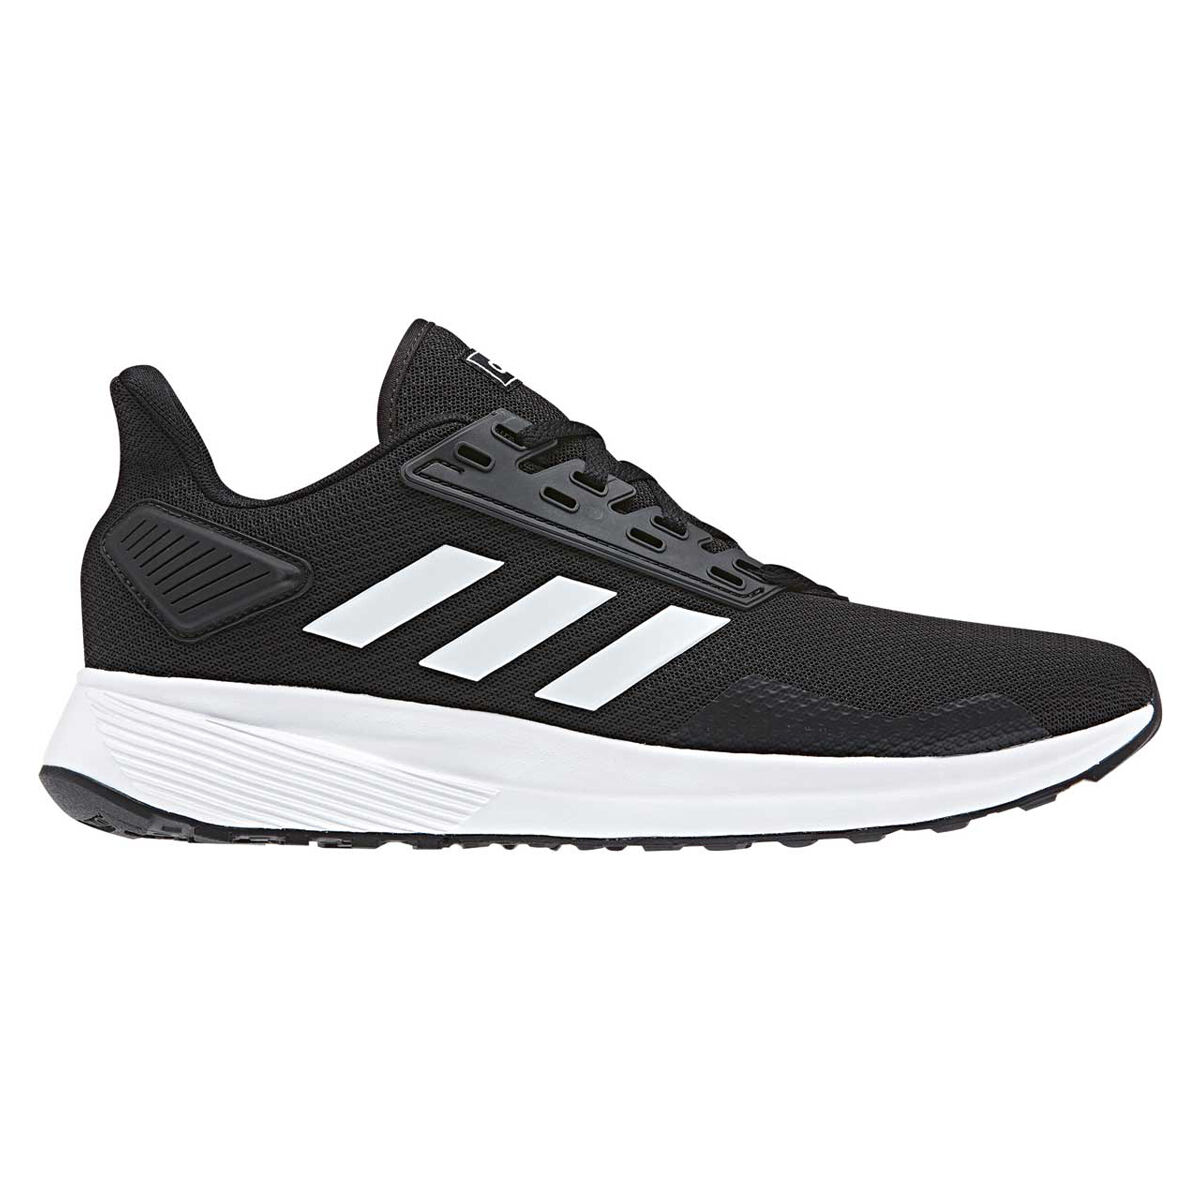 Adidas White Duramo 7 Mens Running Sneakers Shoes Great